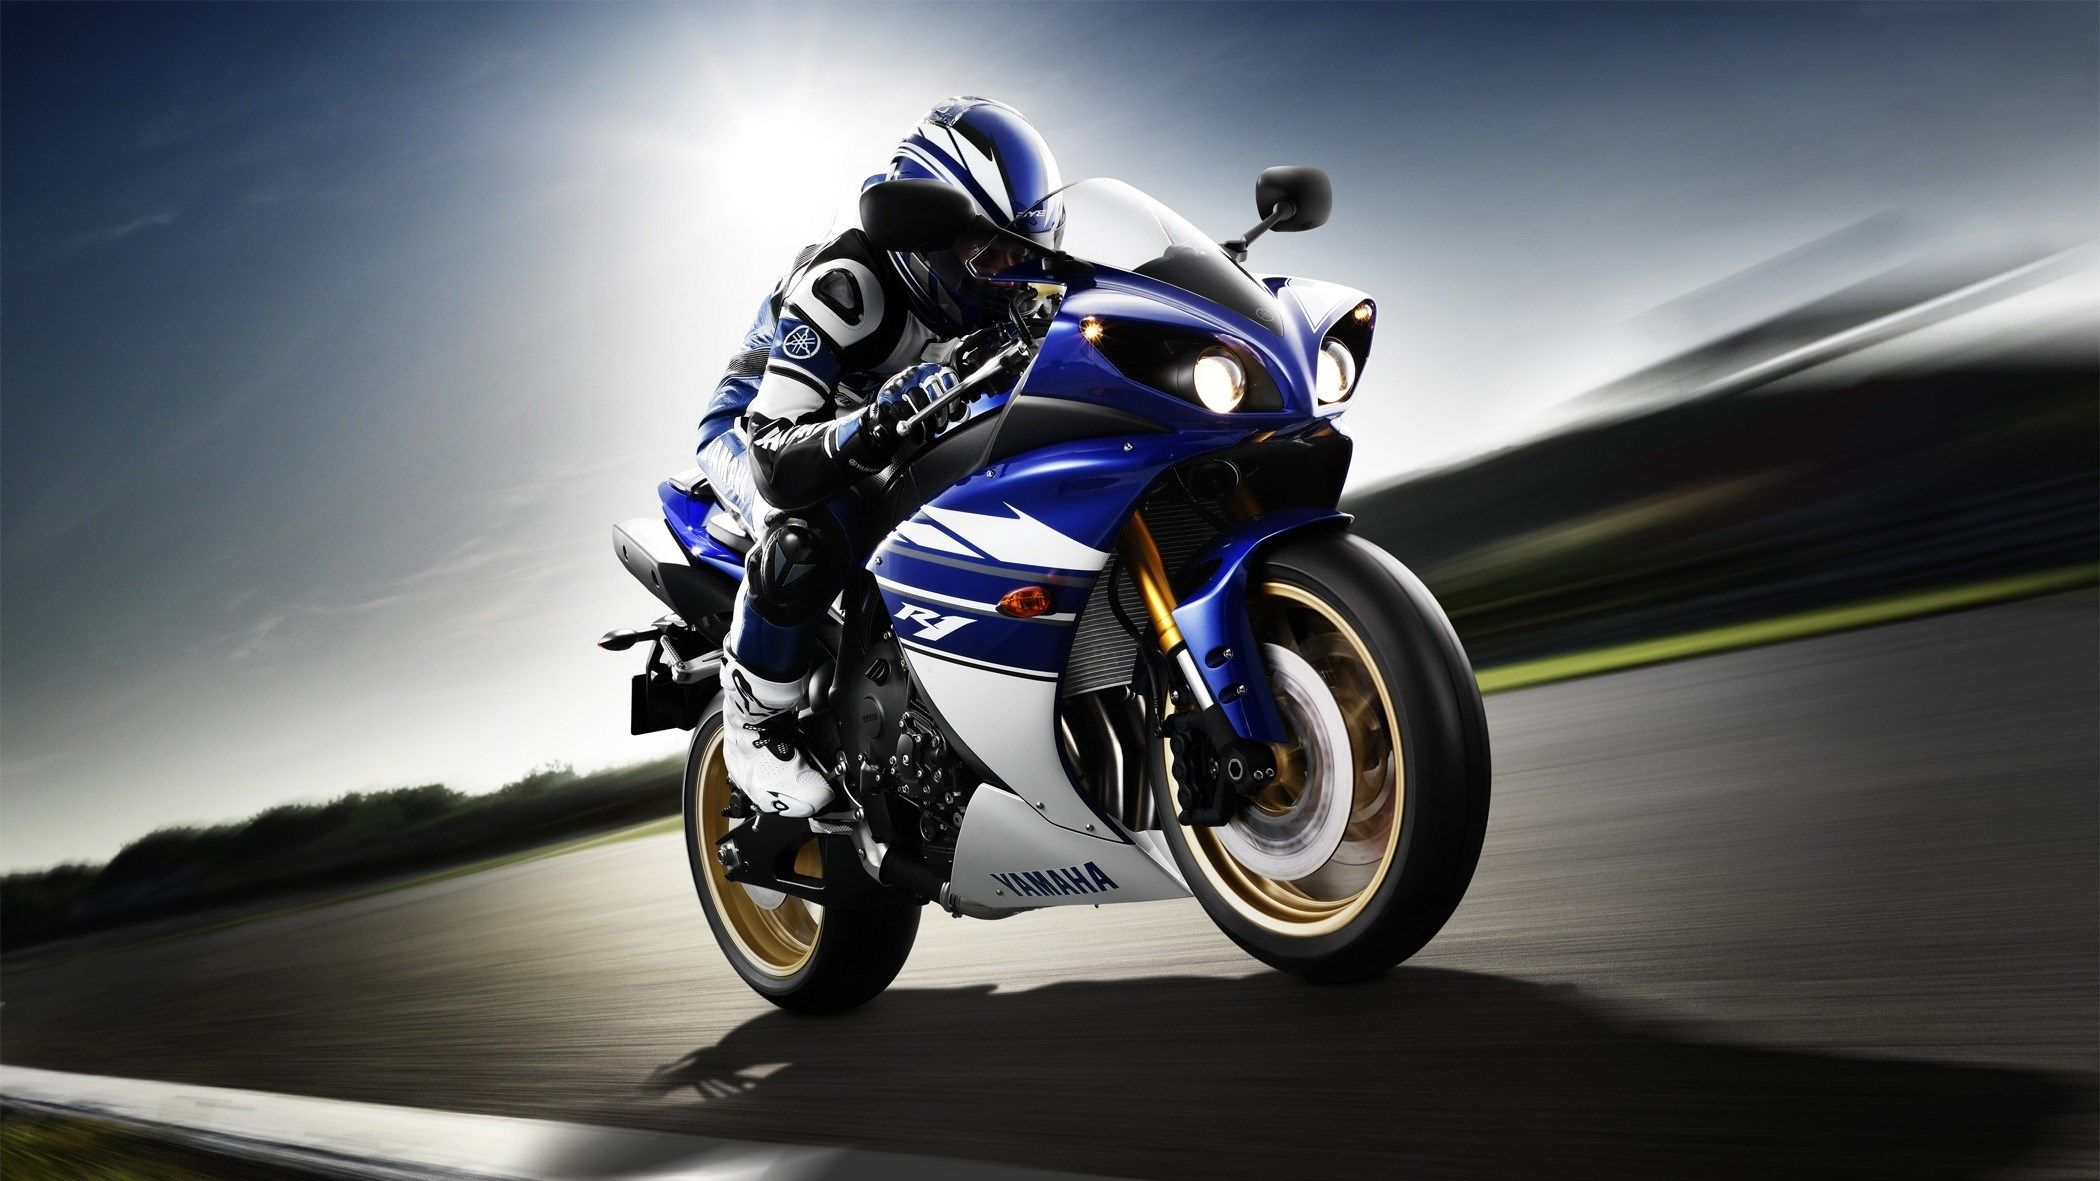 Miss my college days pictures collection free download mobogenie - Free Desktop Pictures Yamaha Yzf R1 Yamaha Yzf R1 Category Ololoshka Pinterest Yamaha Yzf And Desktop Pictures